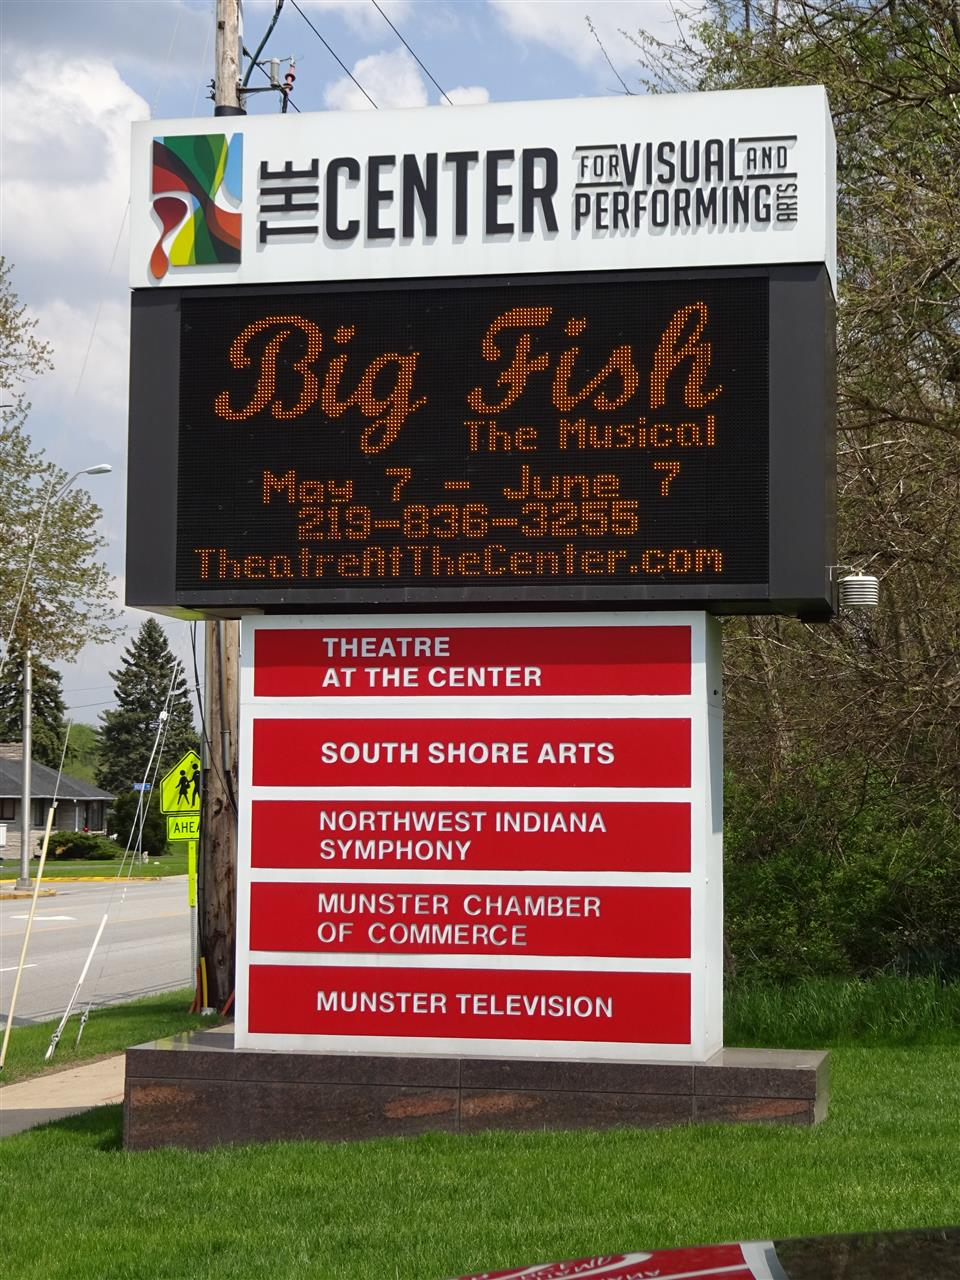 Center for Visual and Performing Arts along Ridge Road in Munster, Indiana, which is home to the Theatre at the Center, South Short Arts Gallery, Northwest Indiana Symphony, Munster Chamber of Commerce and Munster Television local access studio.